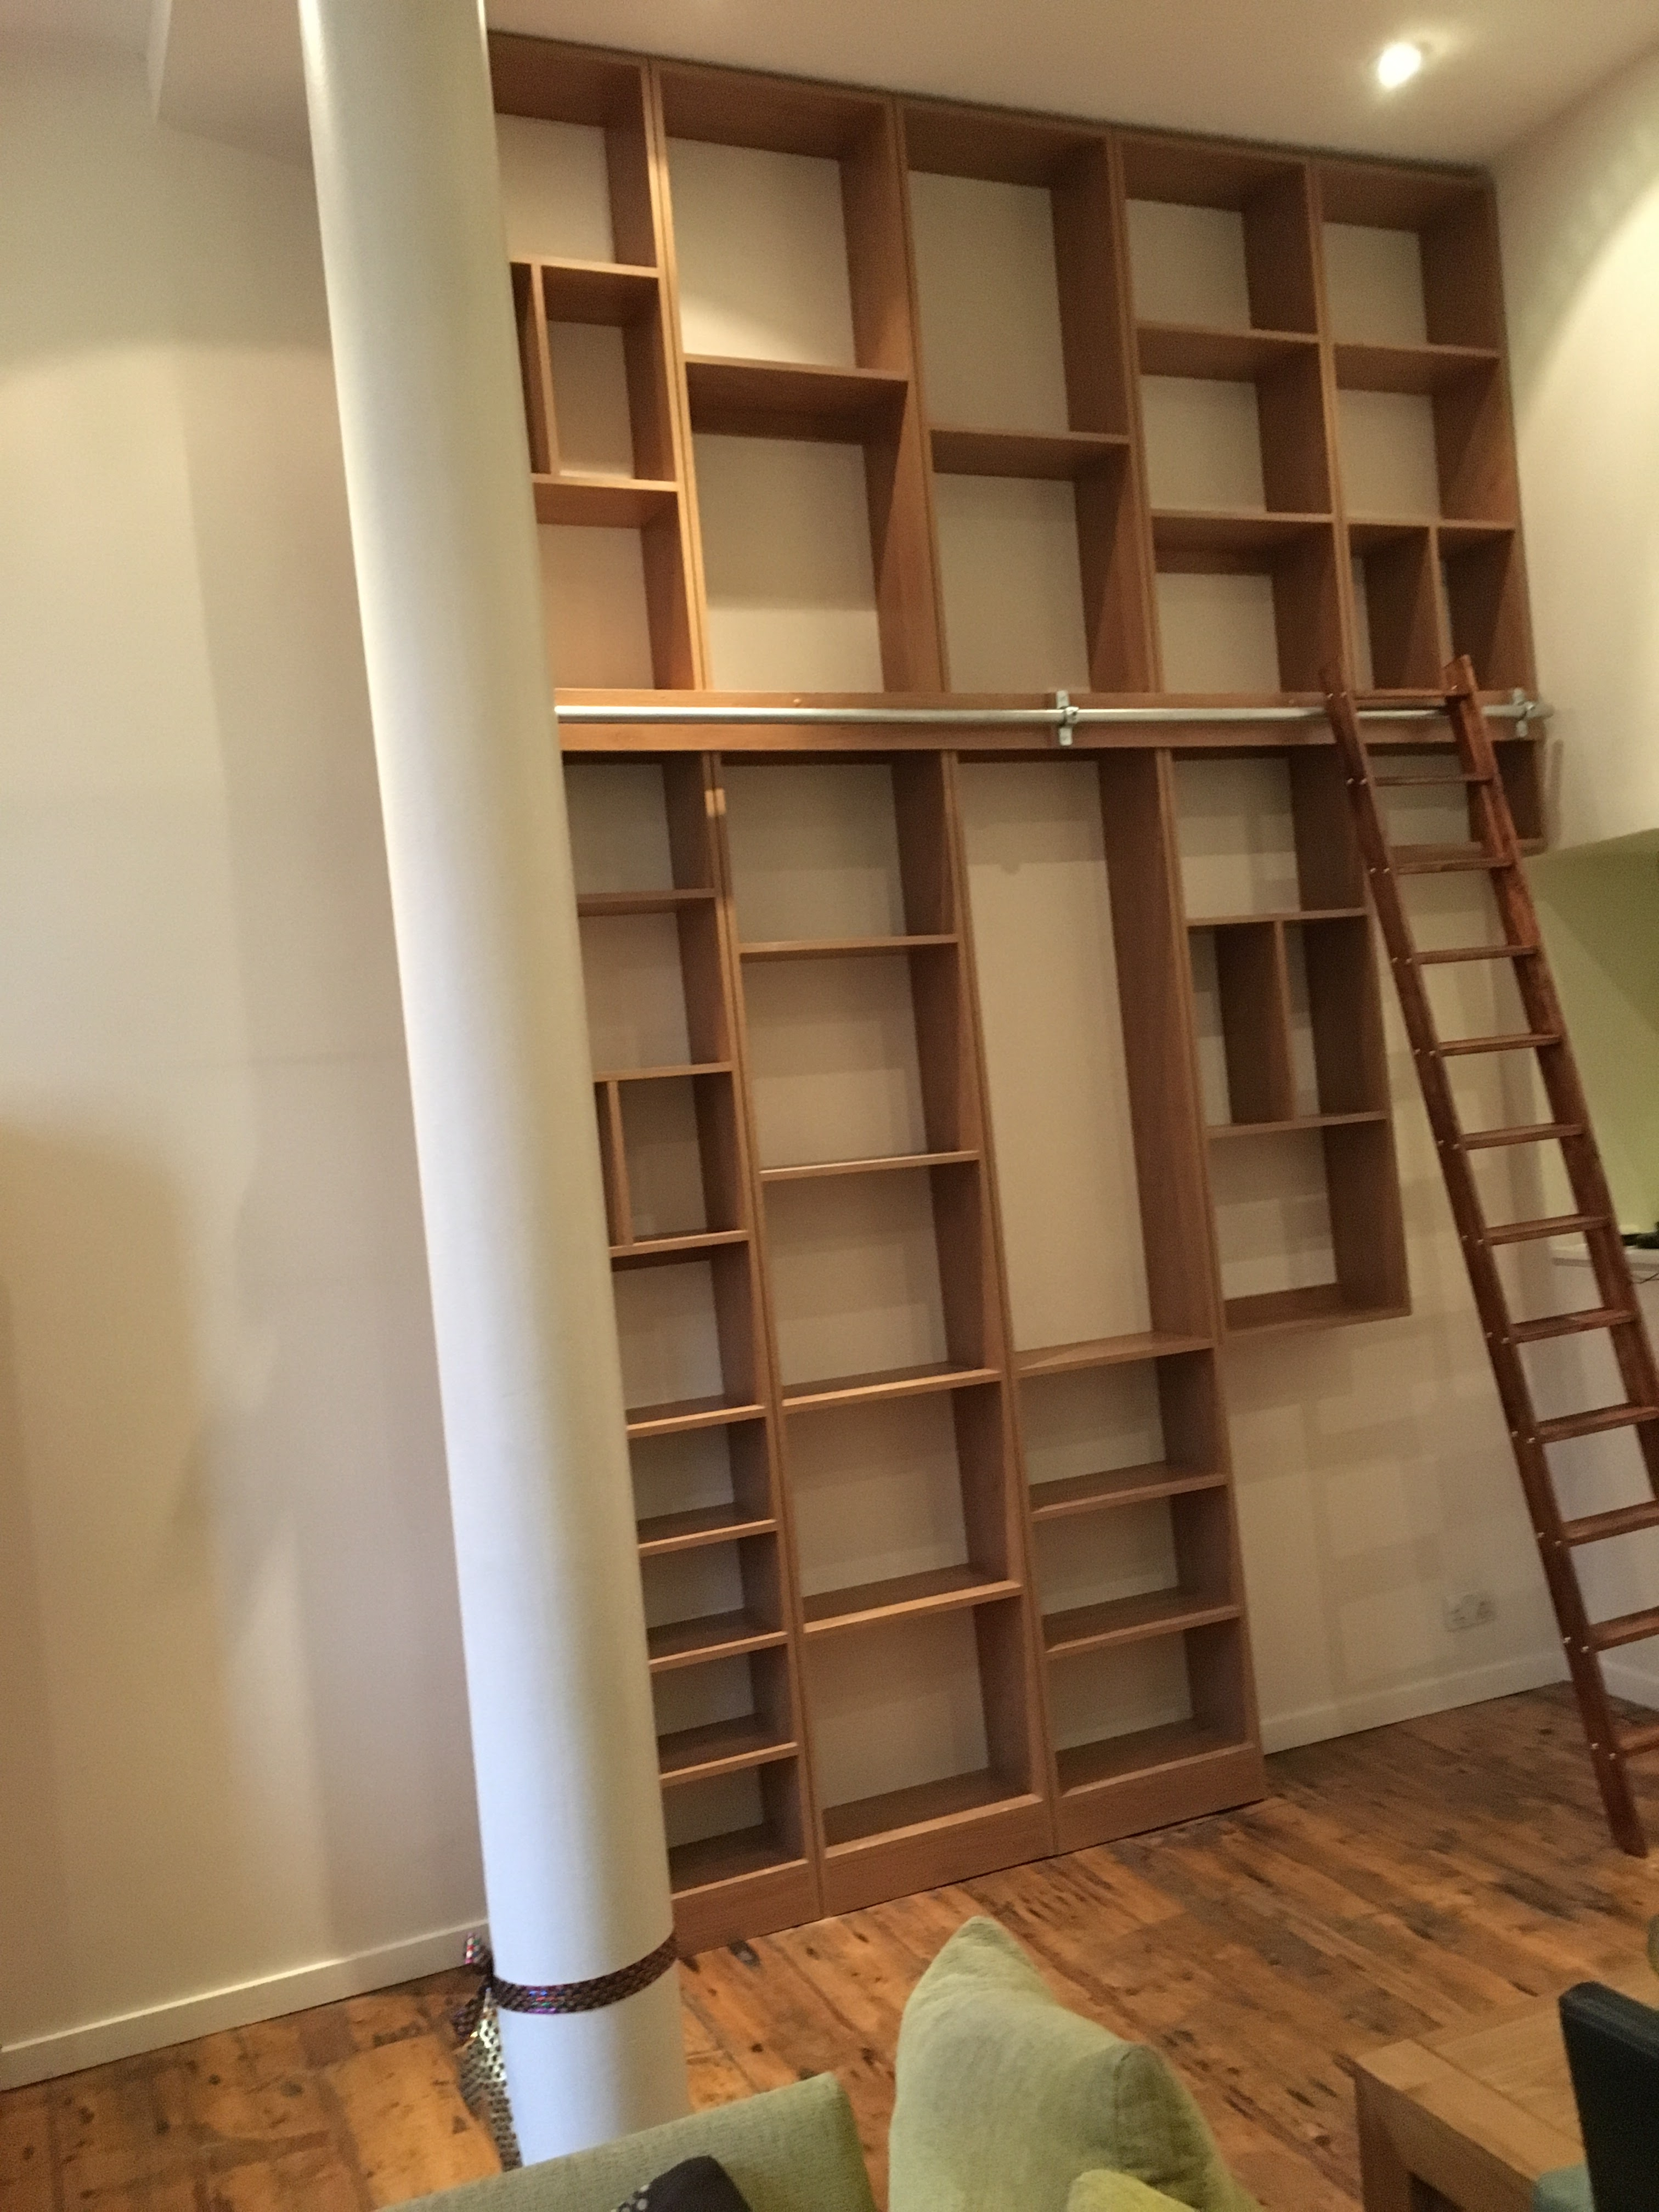 14 ft high library shelves with ladder